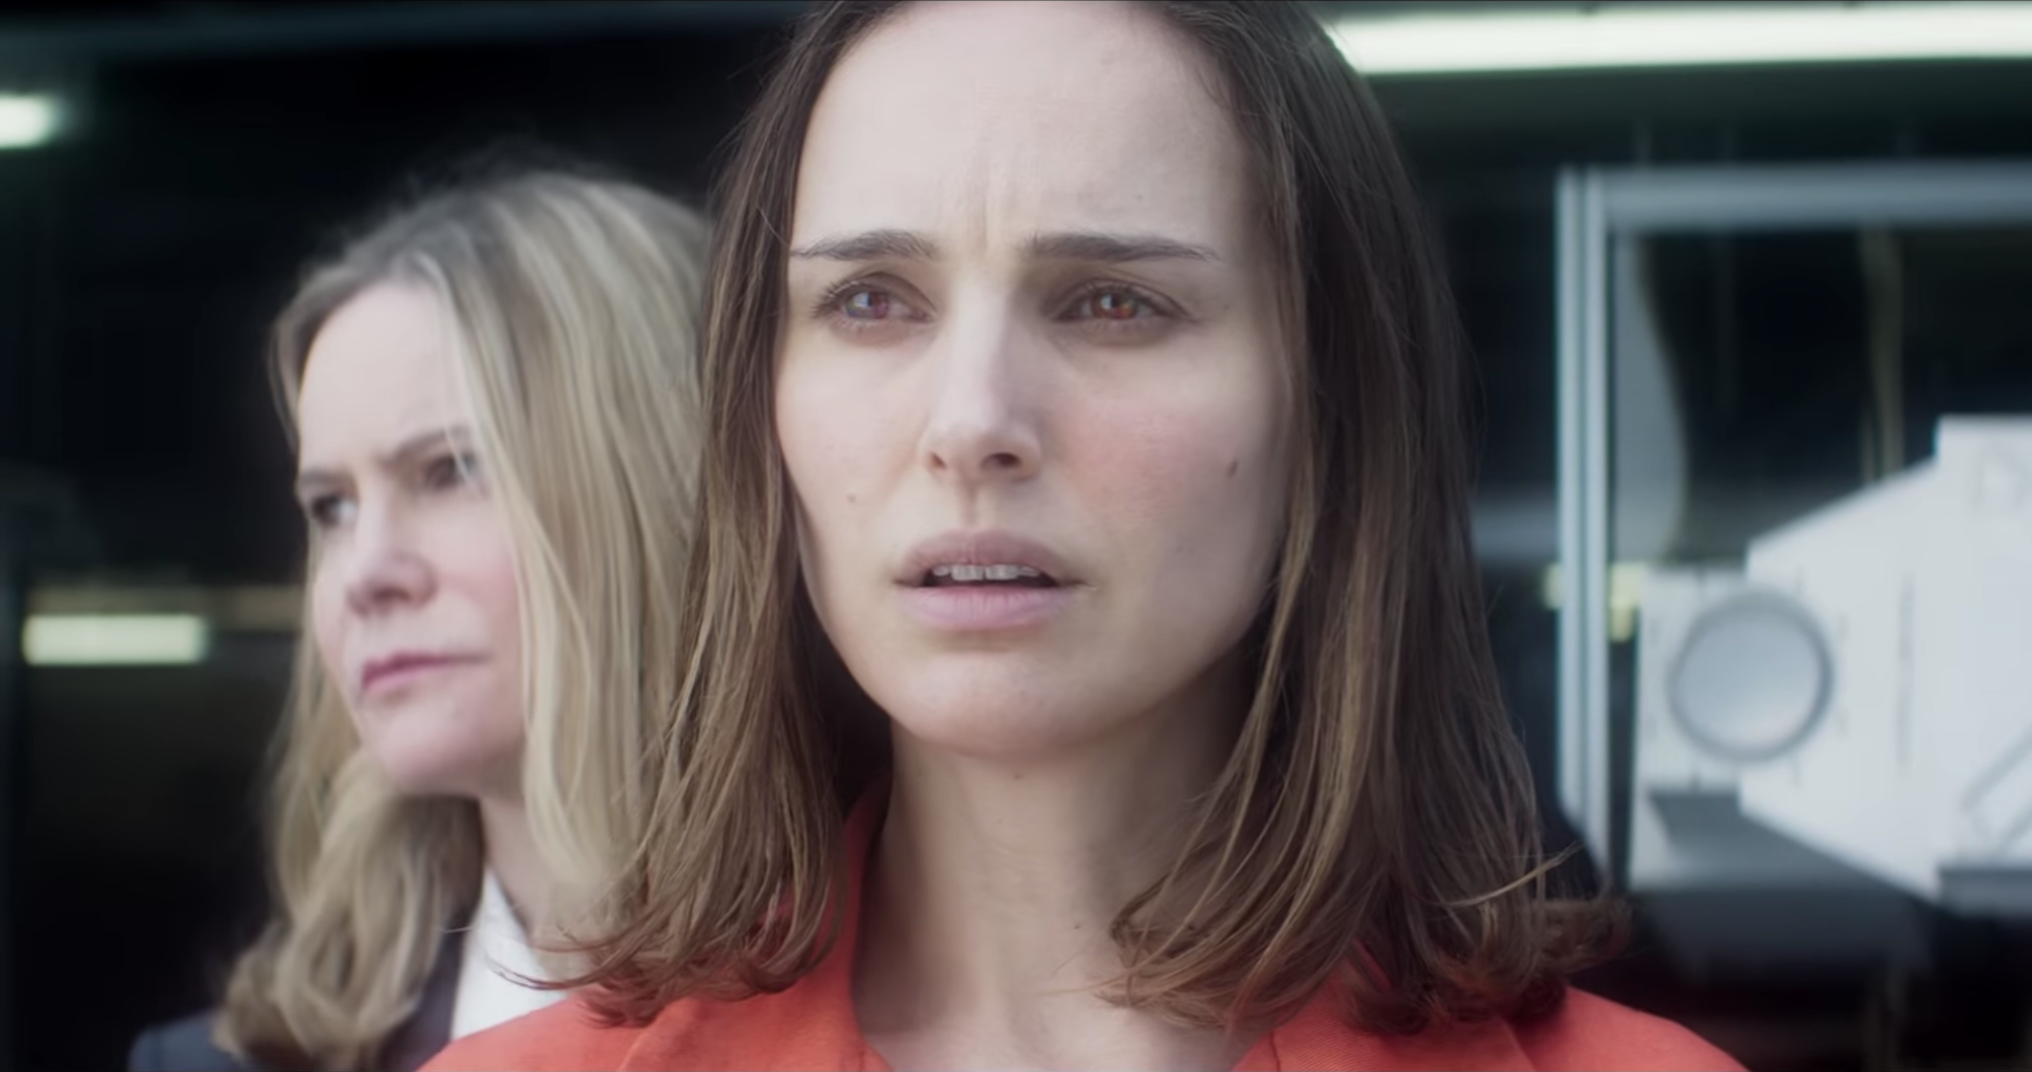 'Annihilation' on Netflix: Moviegoers Need to Take Responsibility For Paramount's Controversial Deal